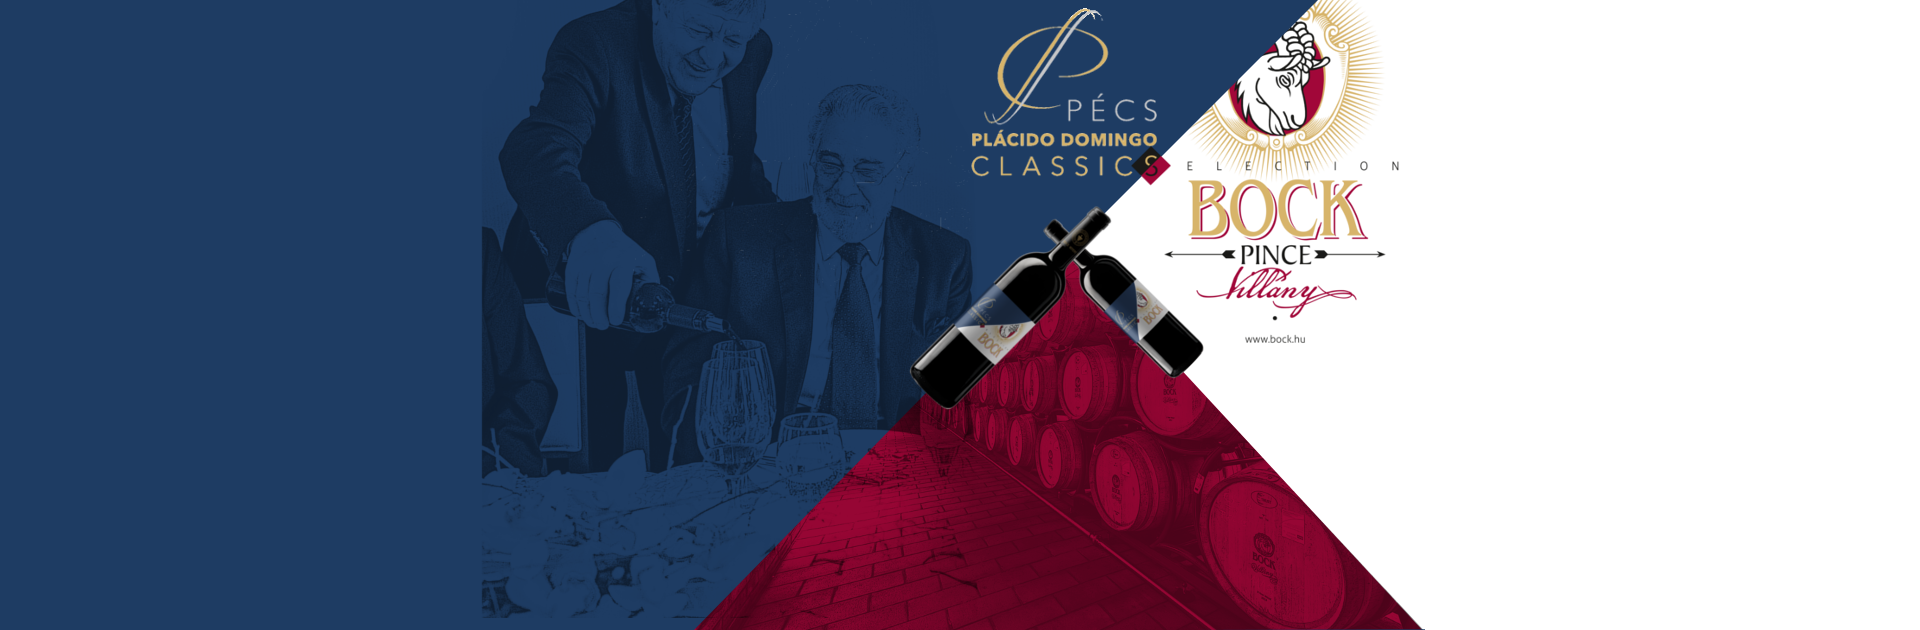 Bock Placido Domingo Selection